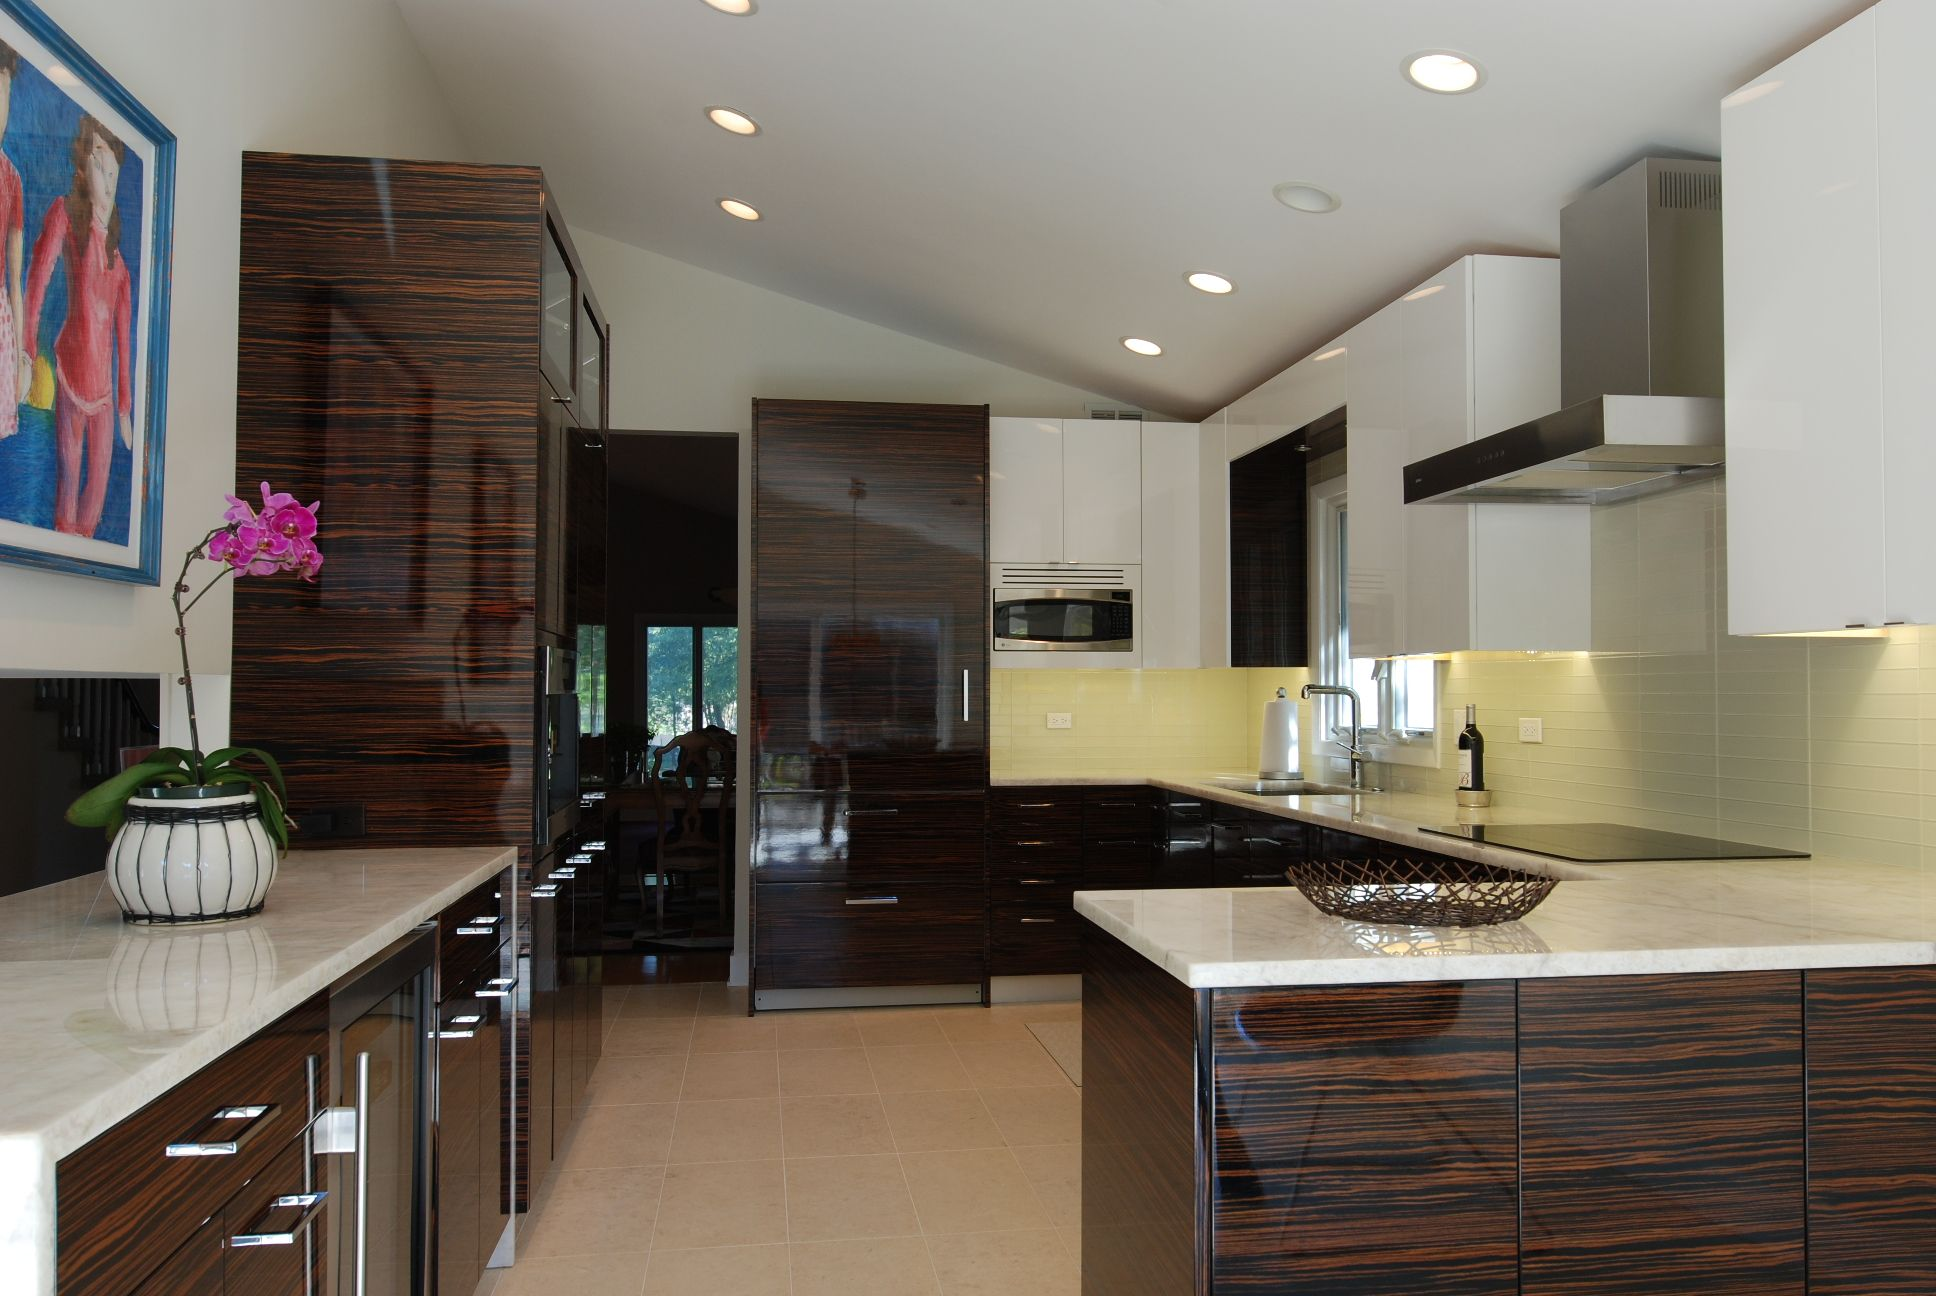 Natural Zebra Wood Cabinets Google Search Ideas For The House Pinterest Woods High